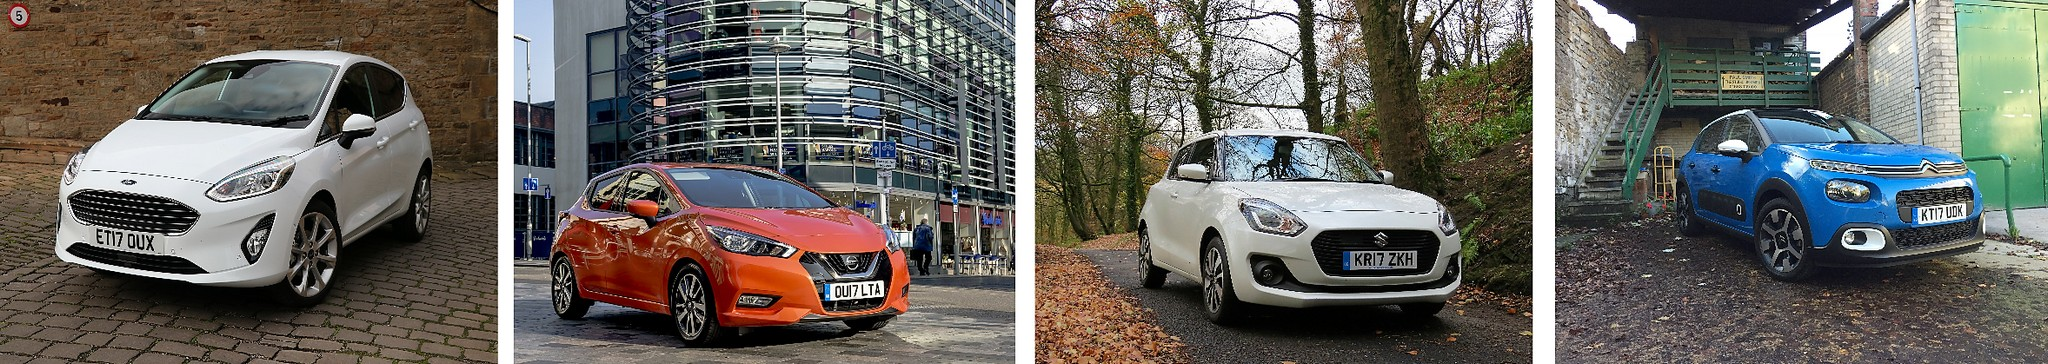 Fiesta, Micra, Swift and C3 multi-car Review